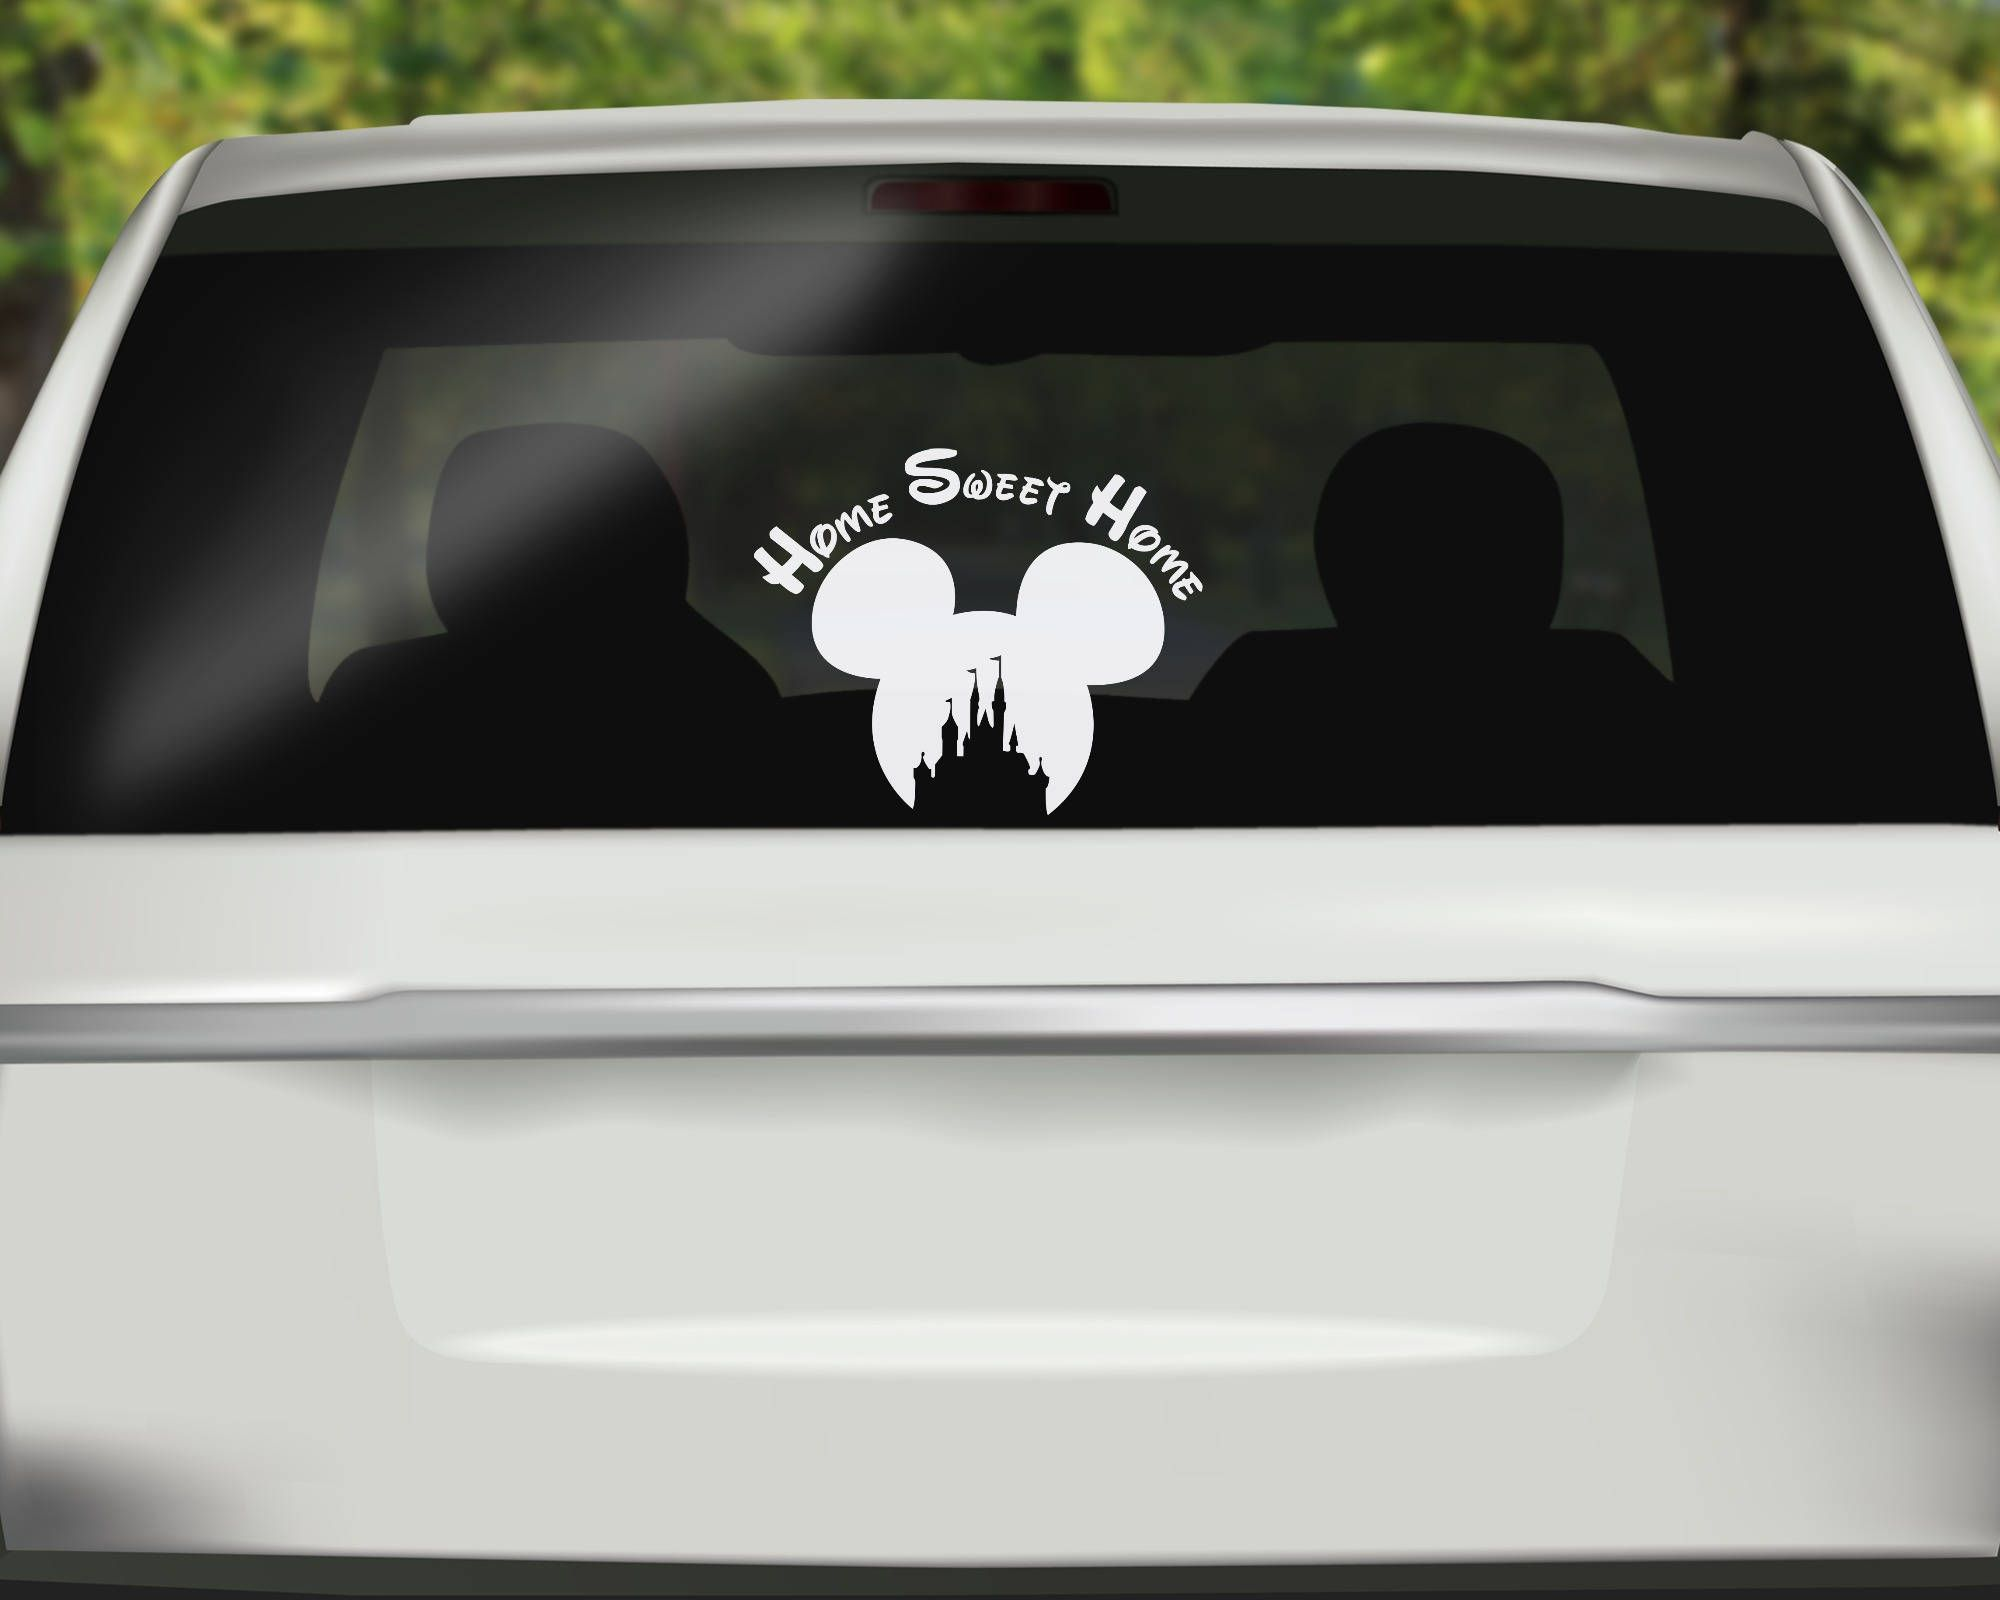 Disney home sweet home decal mickey ears decal princess castle sticker mickey mouse sticker bumper sticker vinyl decal by spencervinyl on etsy